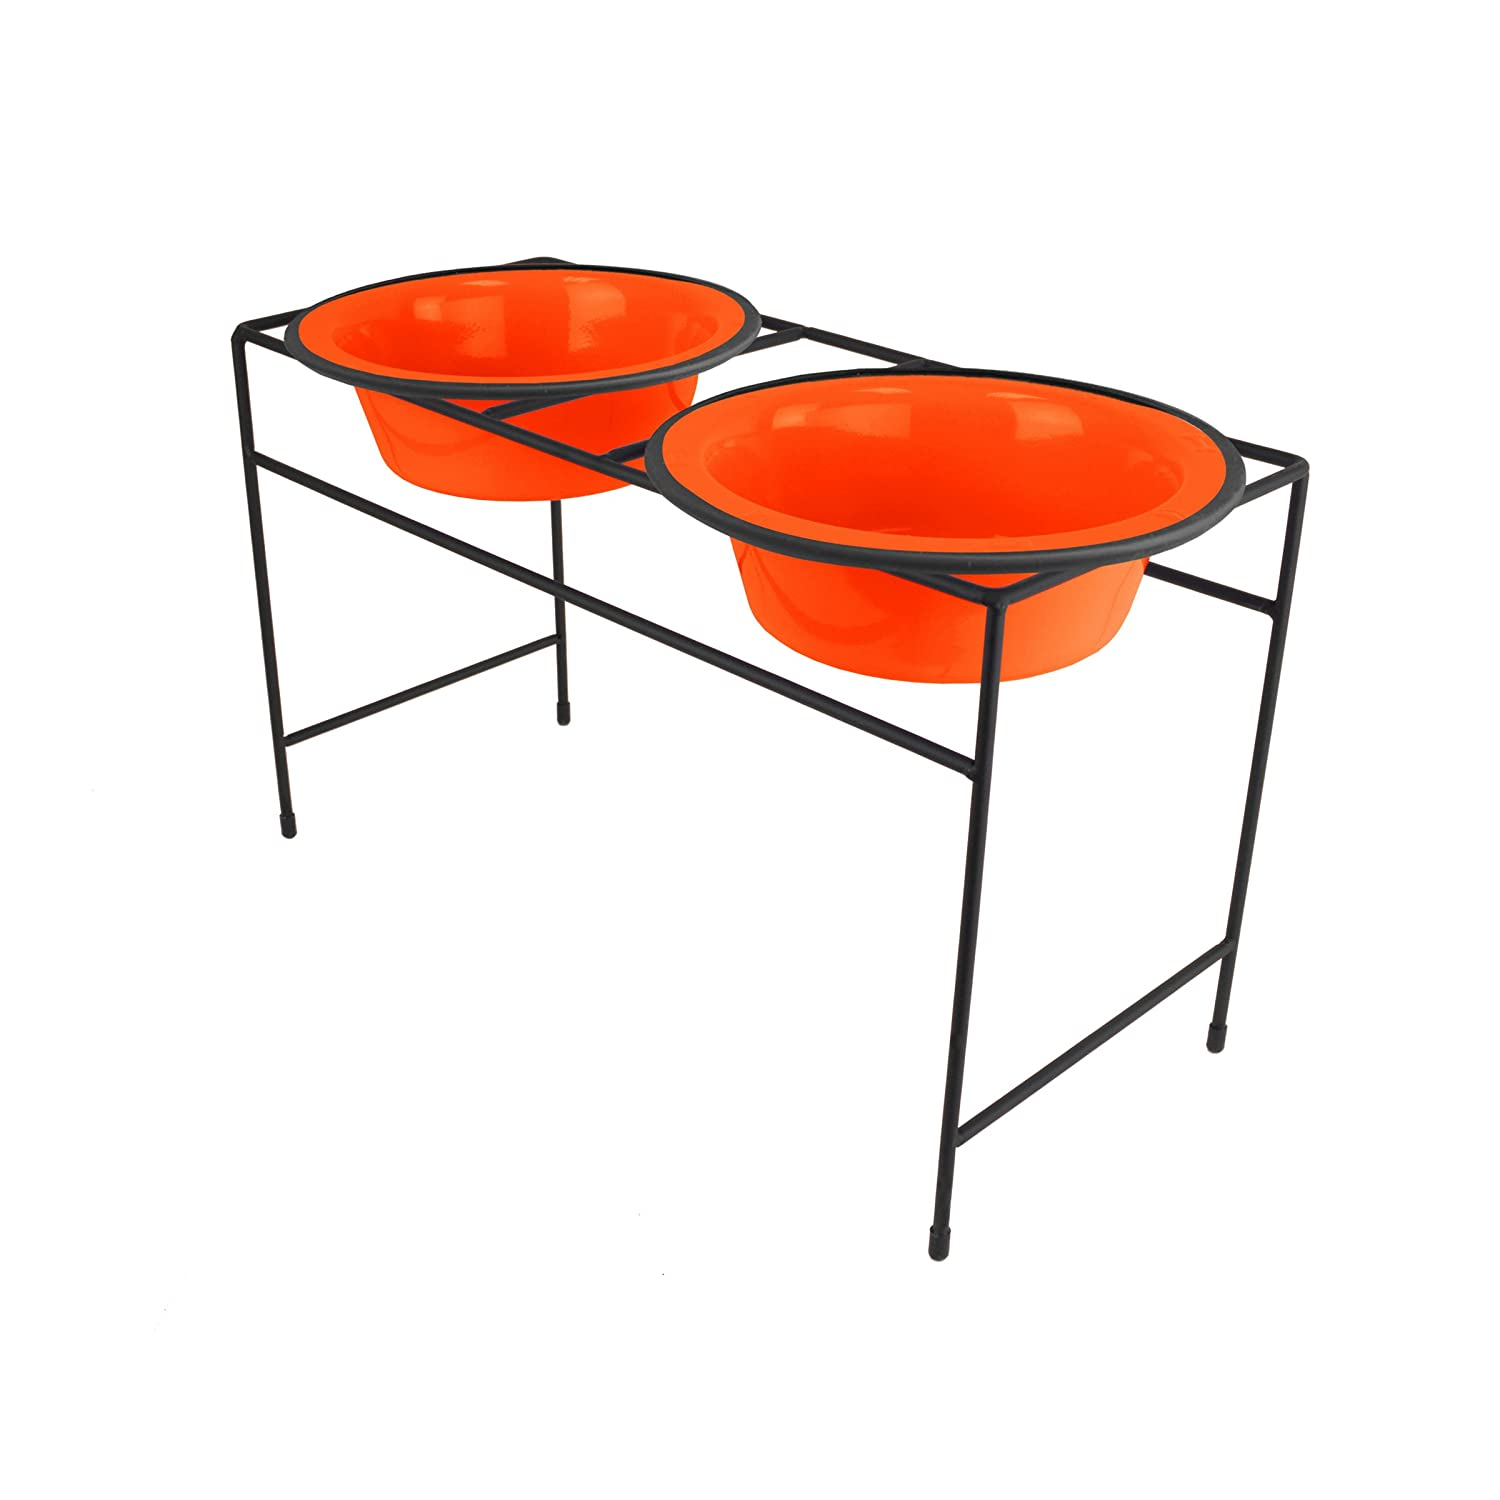 Hunter orange Medium Hunter orange Medium Platinum Pets 24787 Modern Double Diner Feeder, Medium